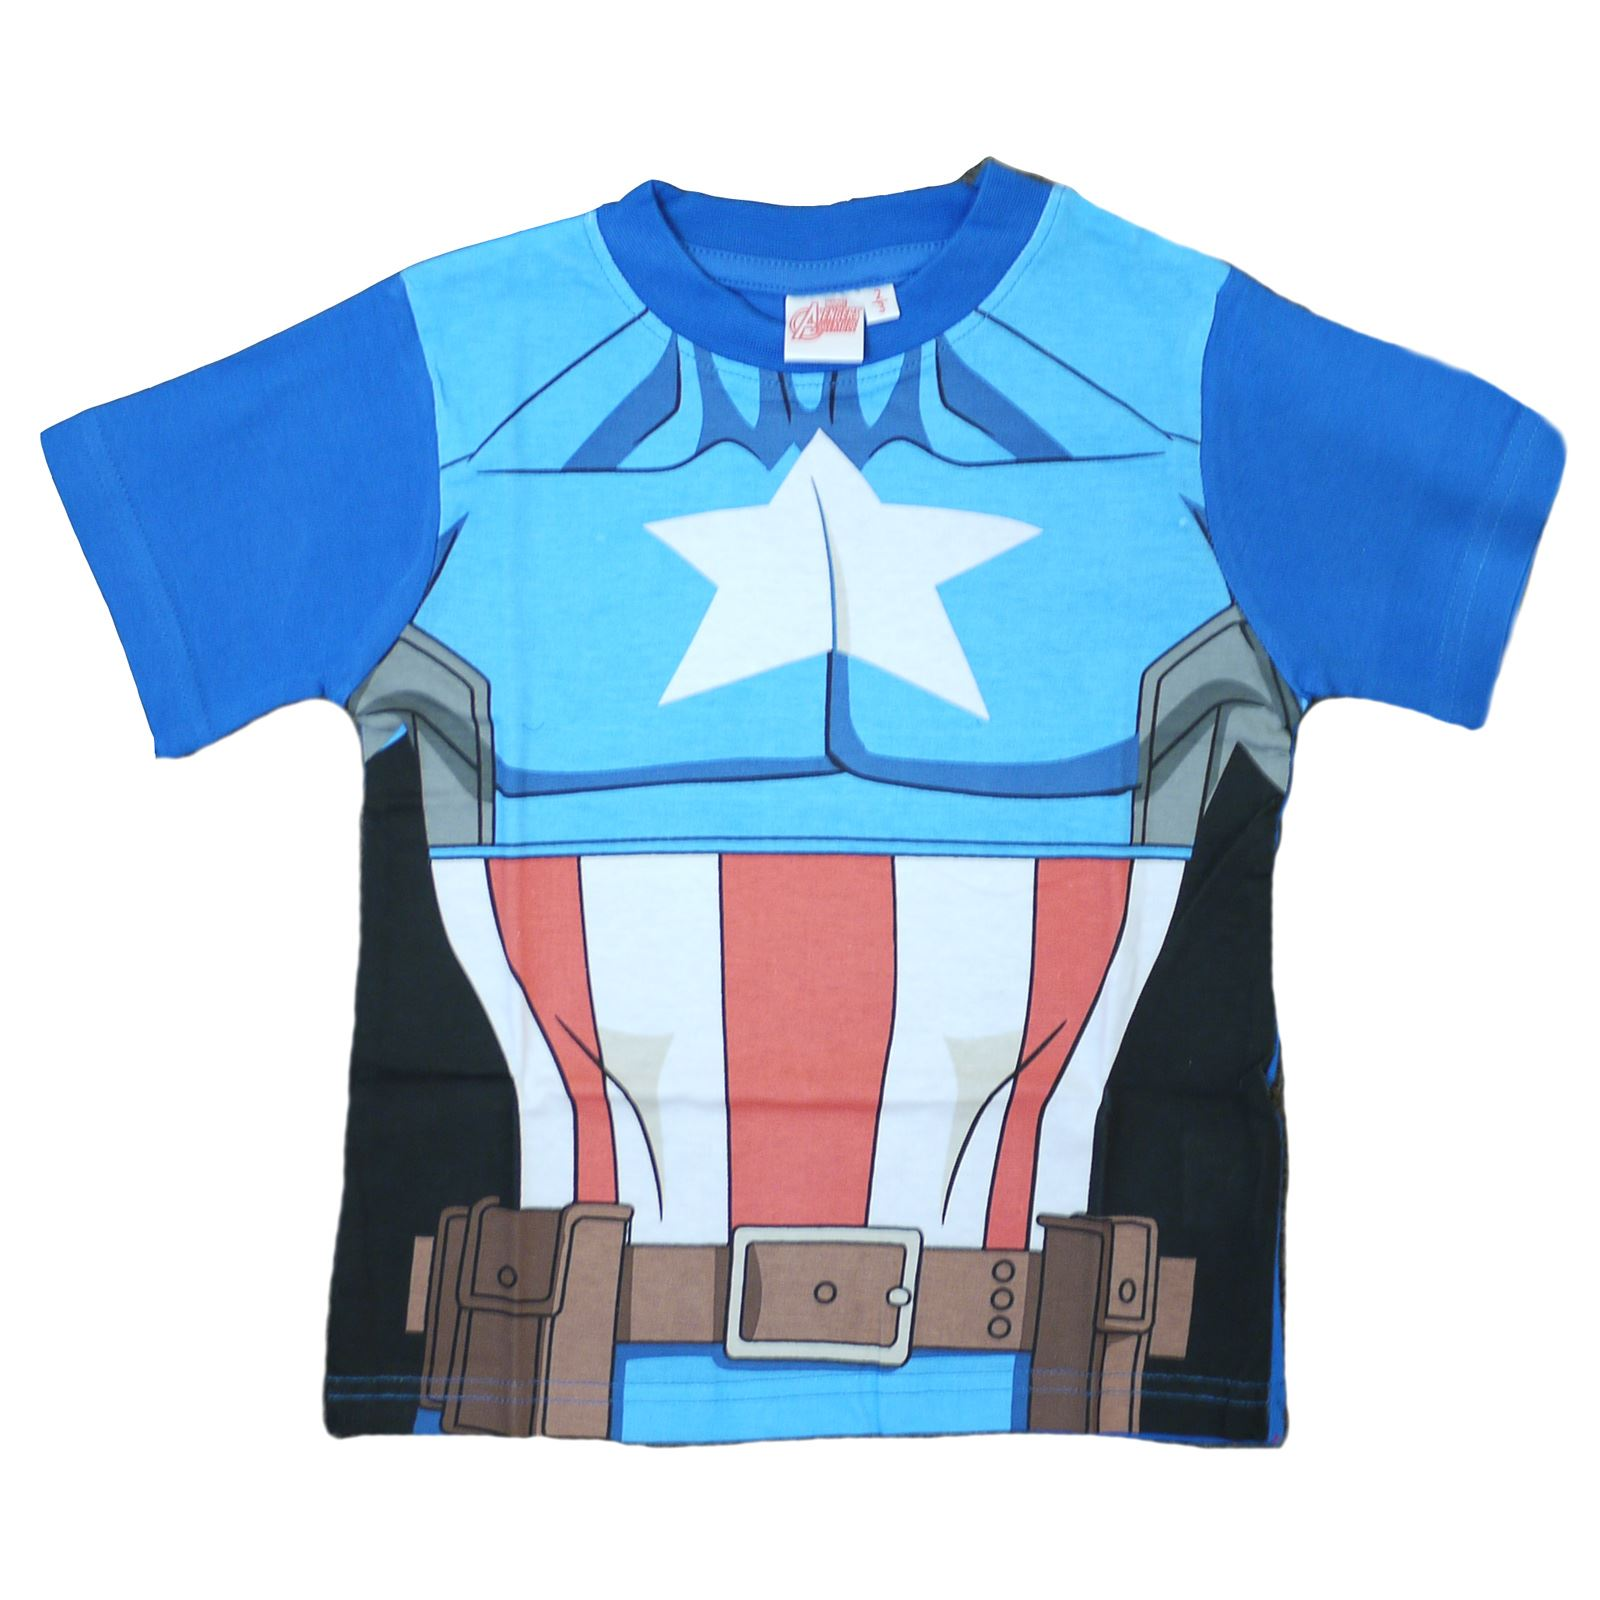 e534d2264de25 Official Boys Kids T-Shirt Avengers Ultron Hulk Iron Man Captain ...